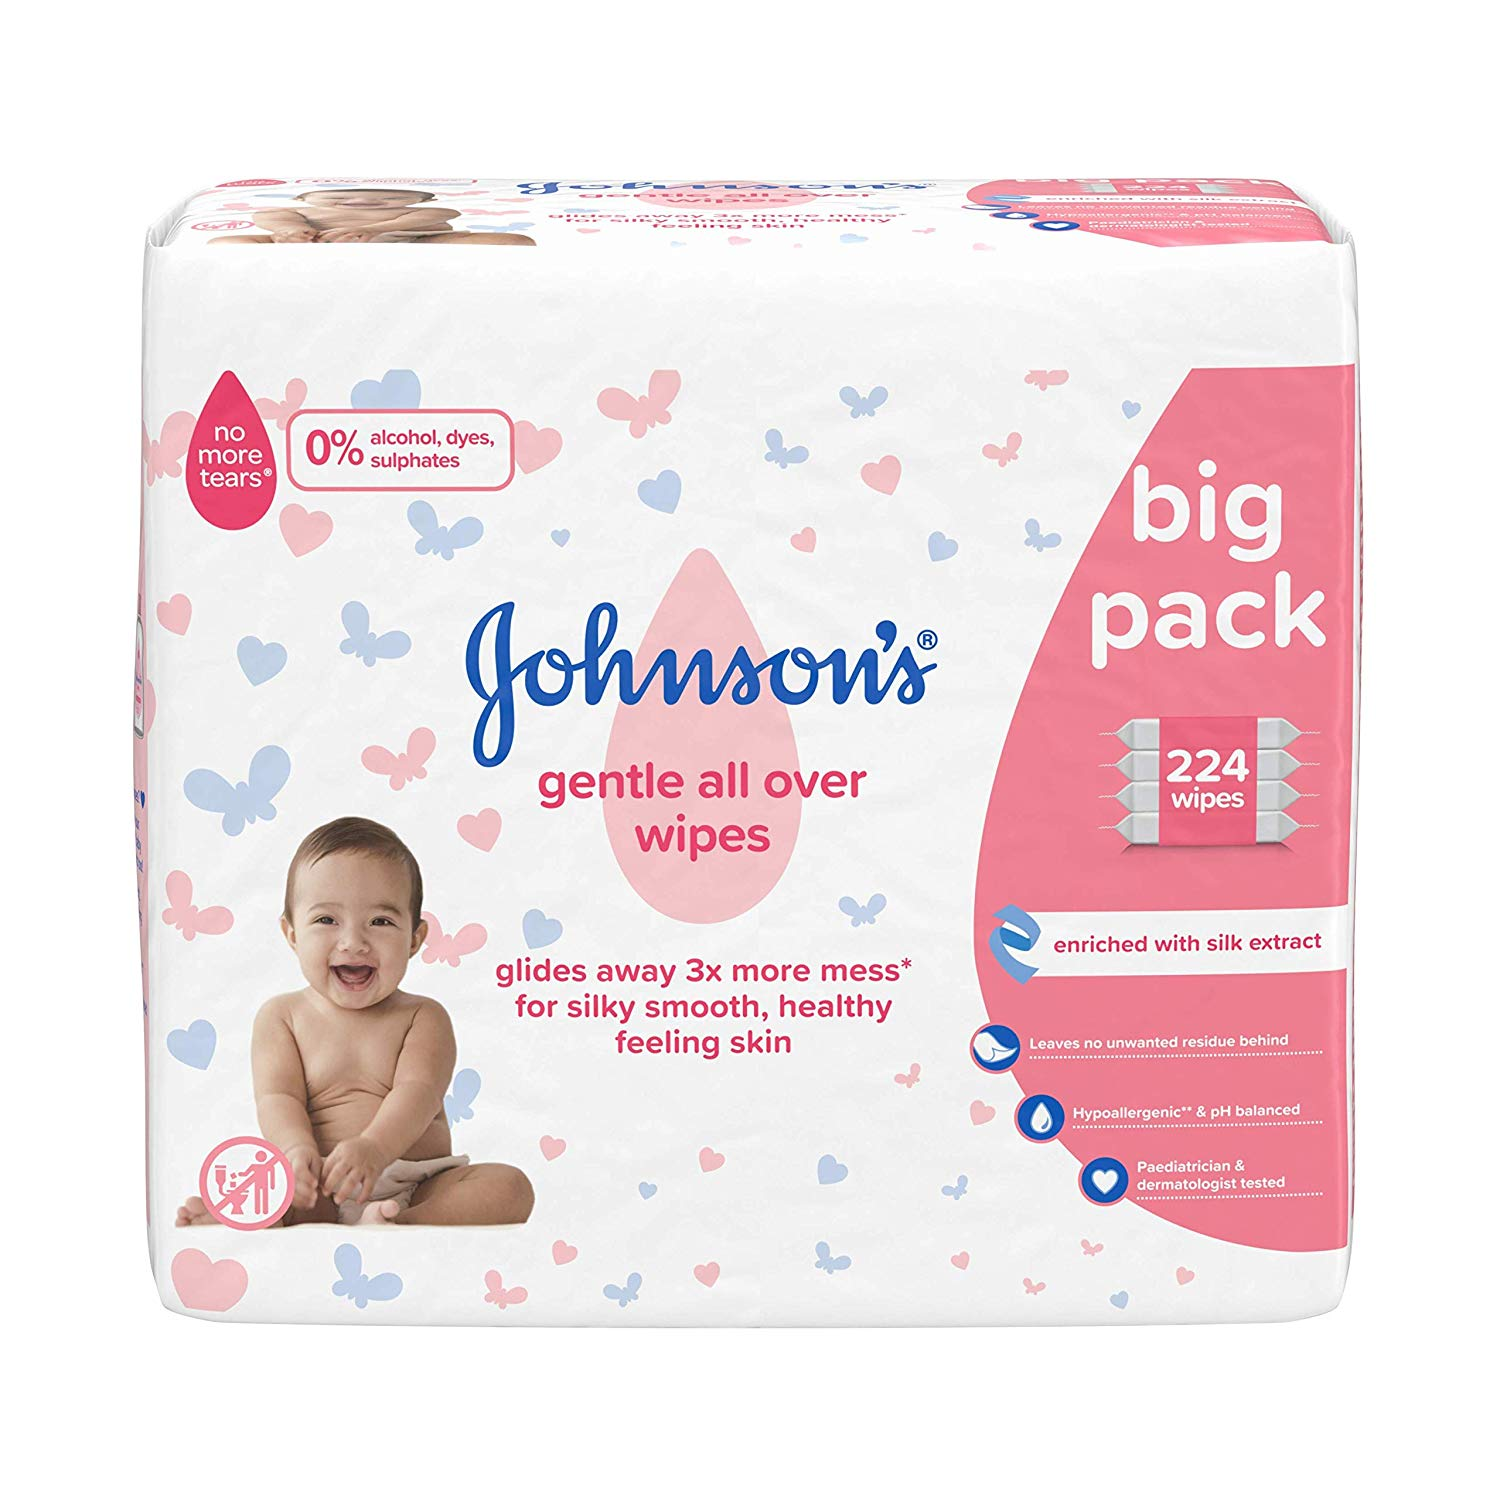 Johnson's Baby Gentle All Over Wipes, 224 Count (56 x 4)